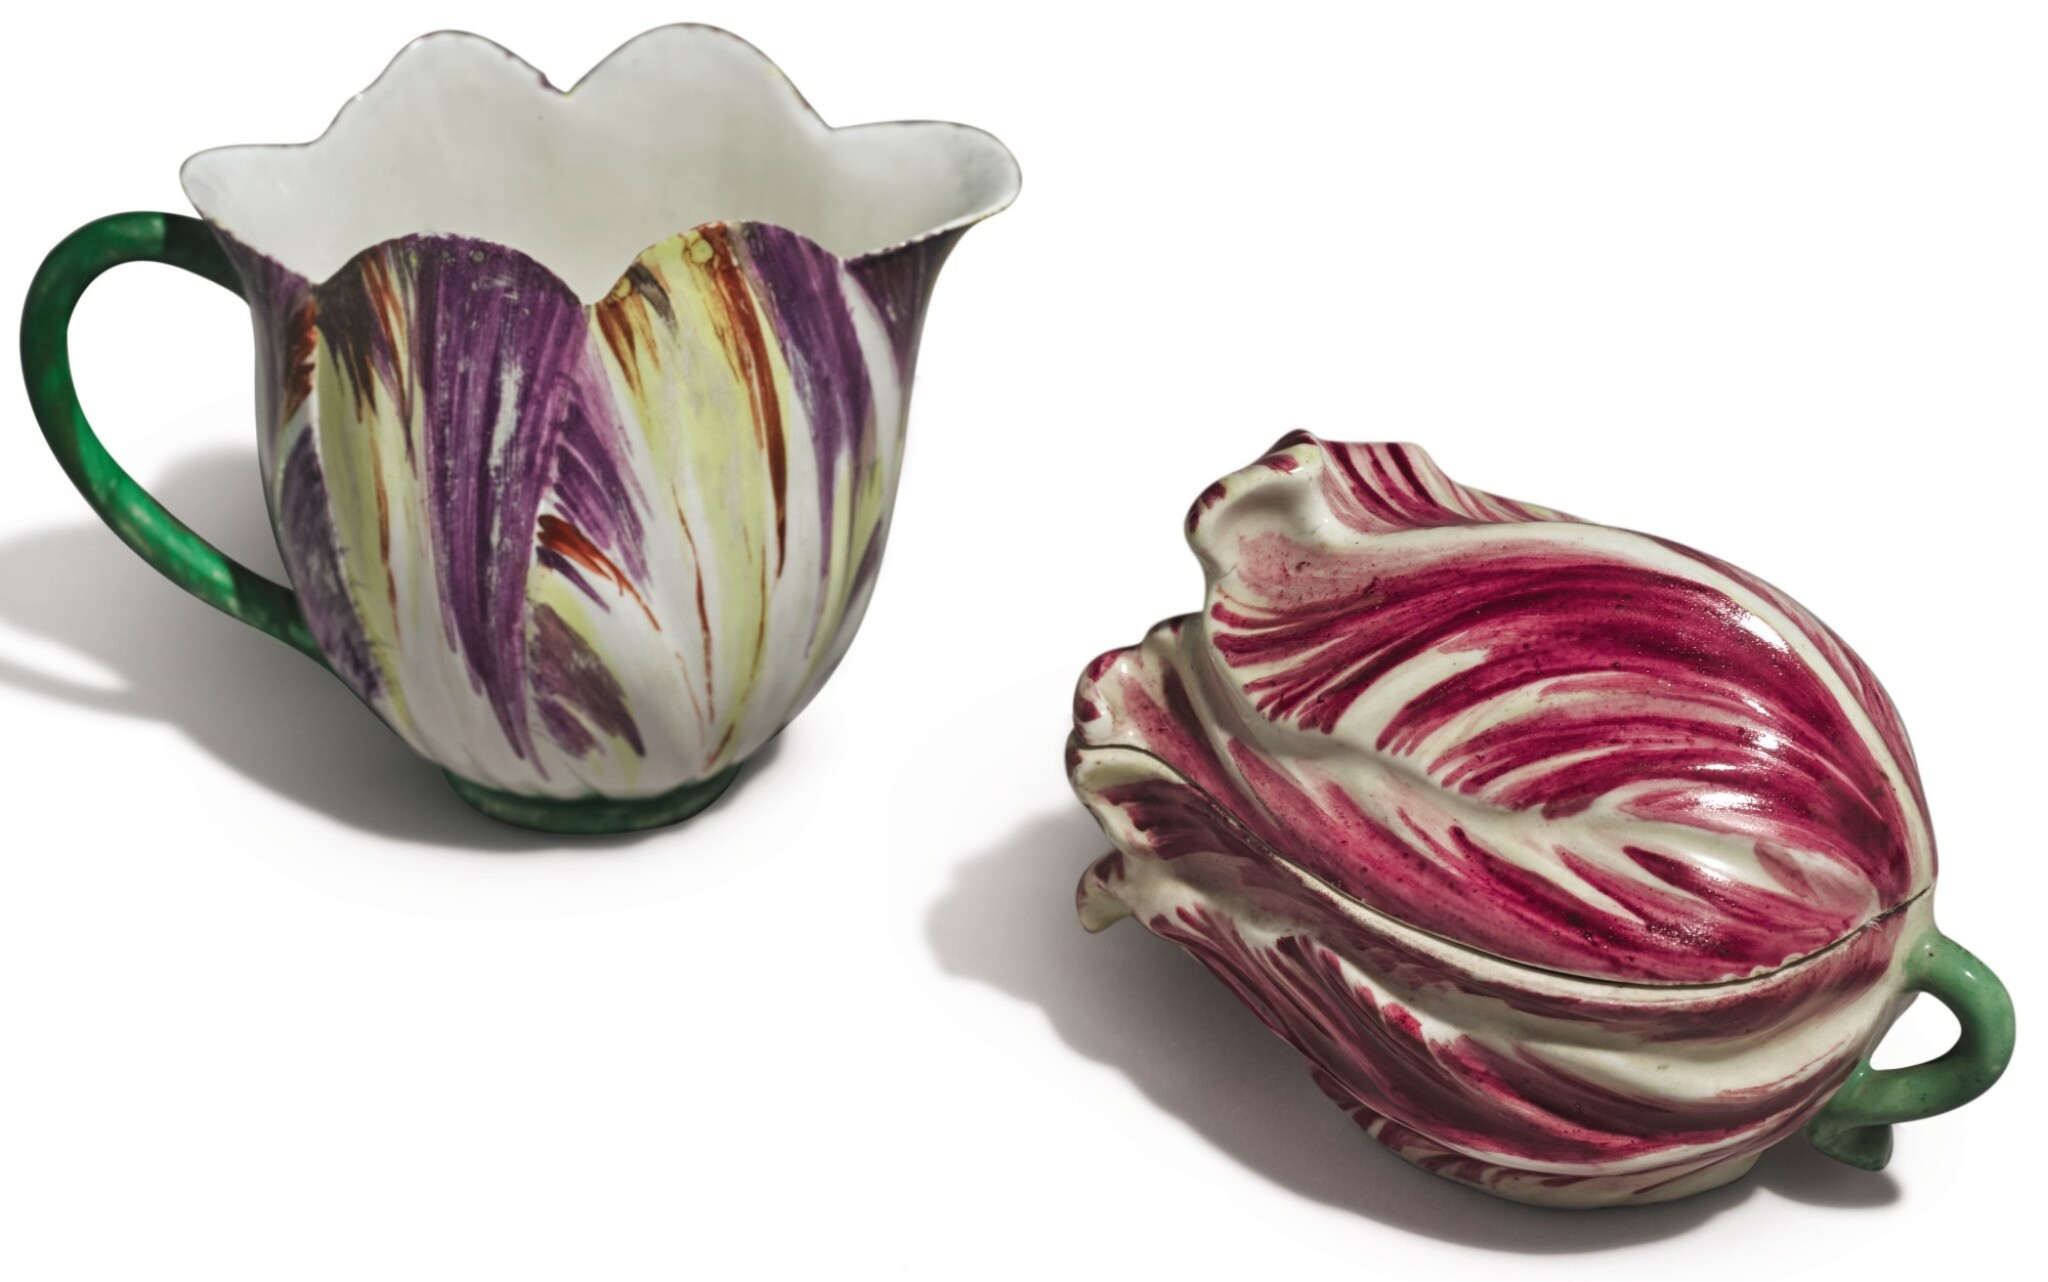 View full screen - View 1 of Lot 146. A LONGTON HALL TULIP-MOLDED CREAM JUG, CIRCA 1755, AND A THURINGIAN TULIP-FORM BOX AND COVER, LATE 18TH CENTURY.